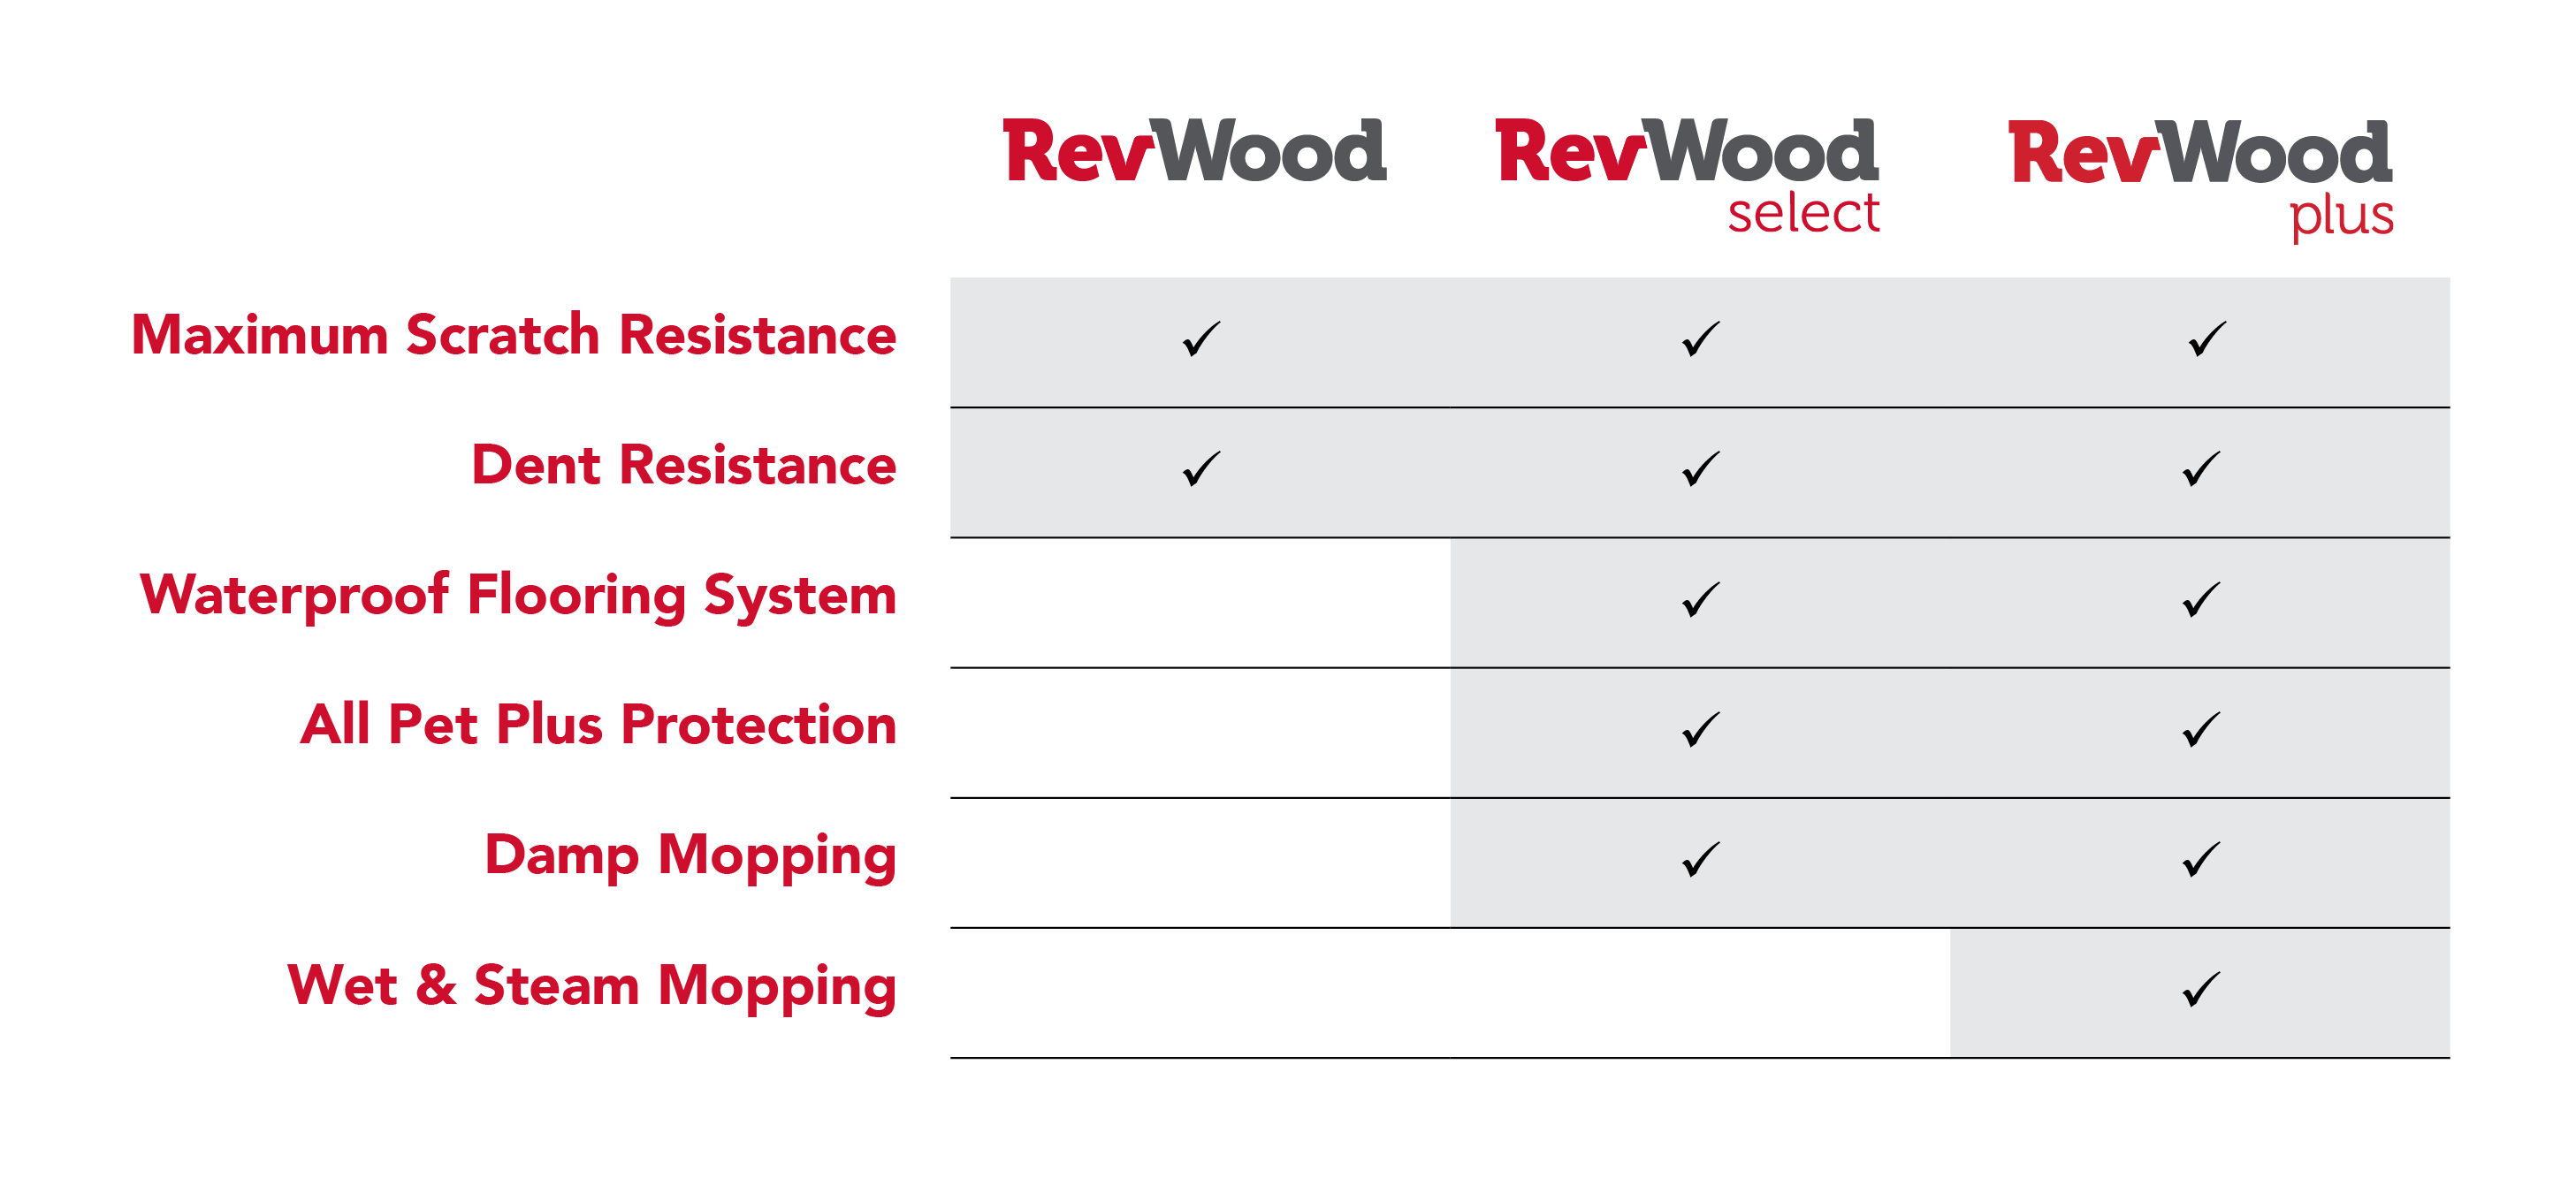 RevWood Comparison Chart